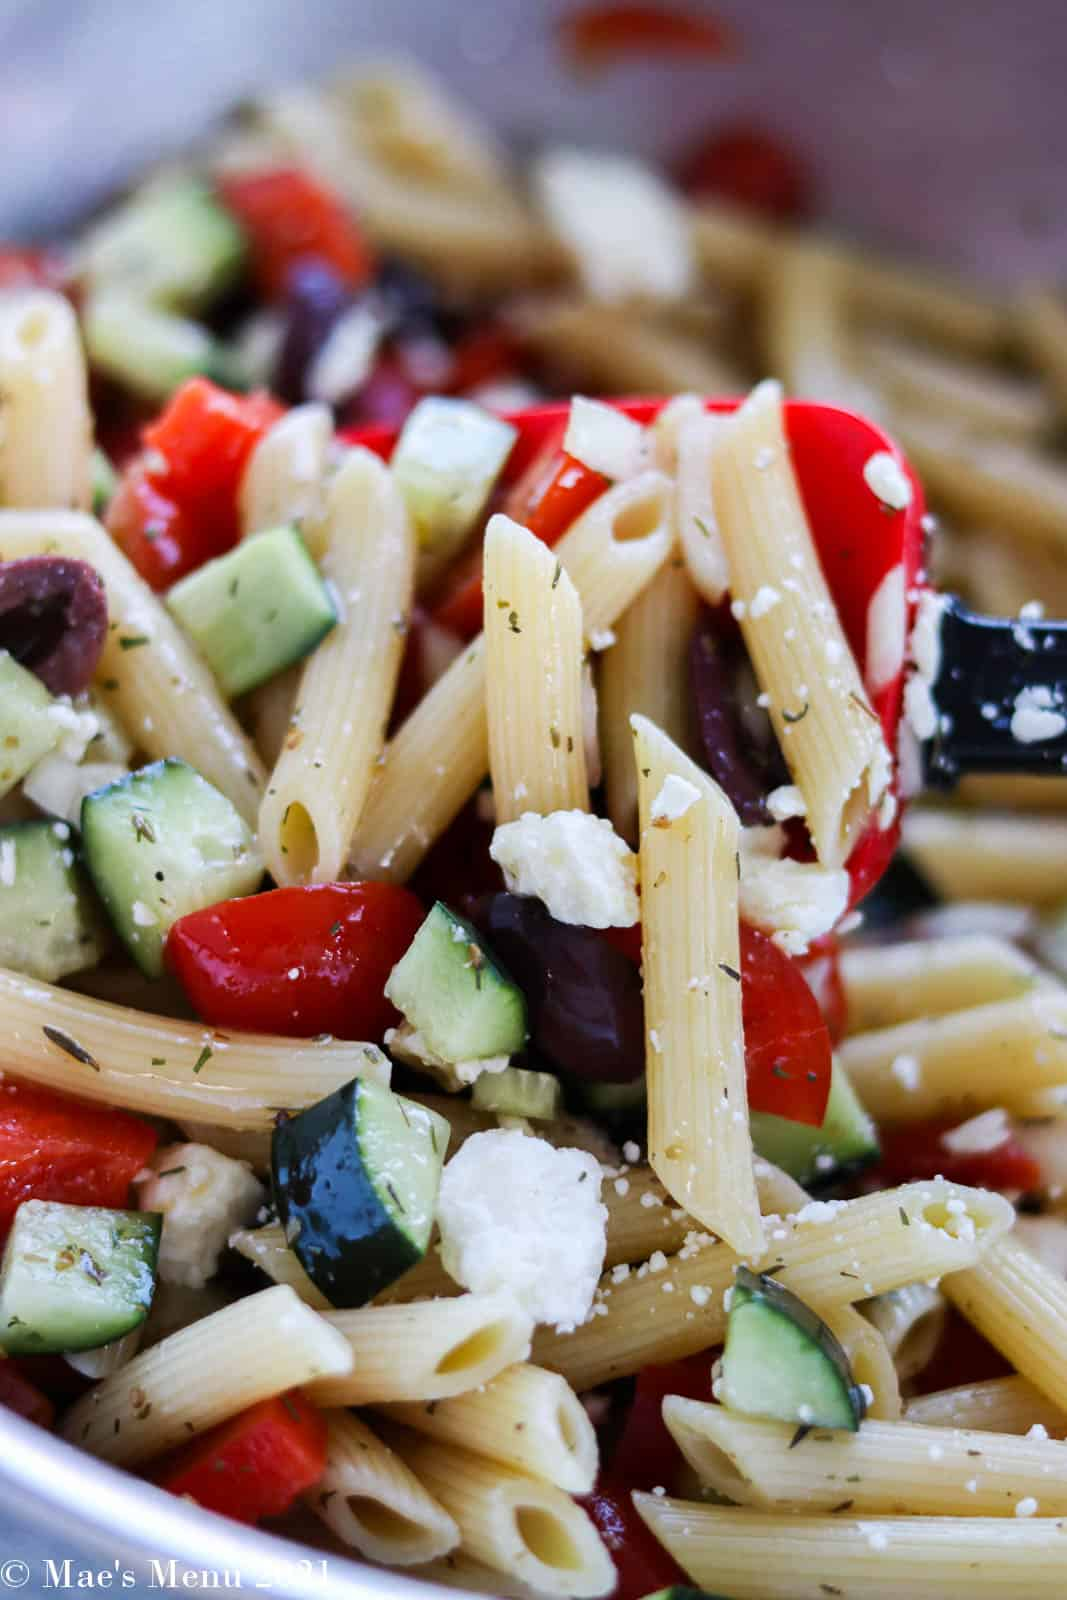 Folding the feta cheese into the vegetable and pasta mixture